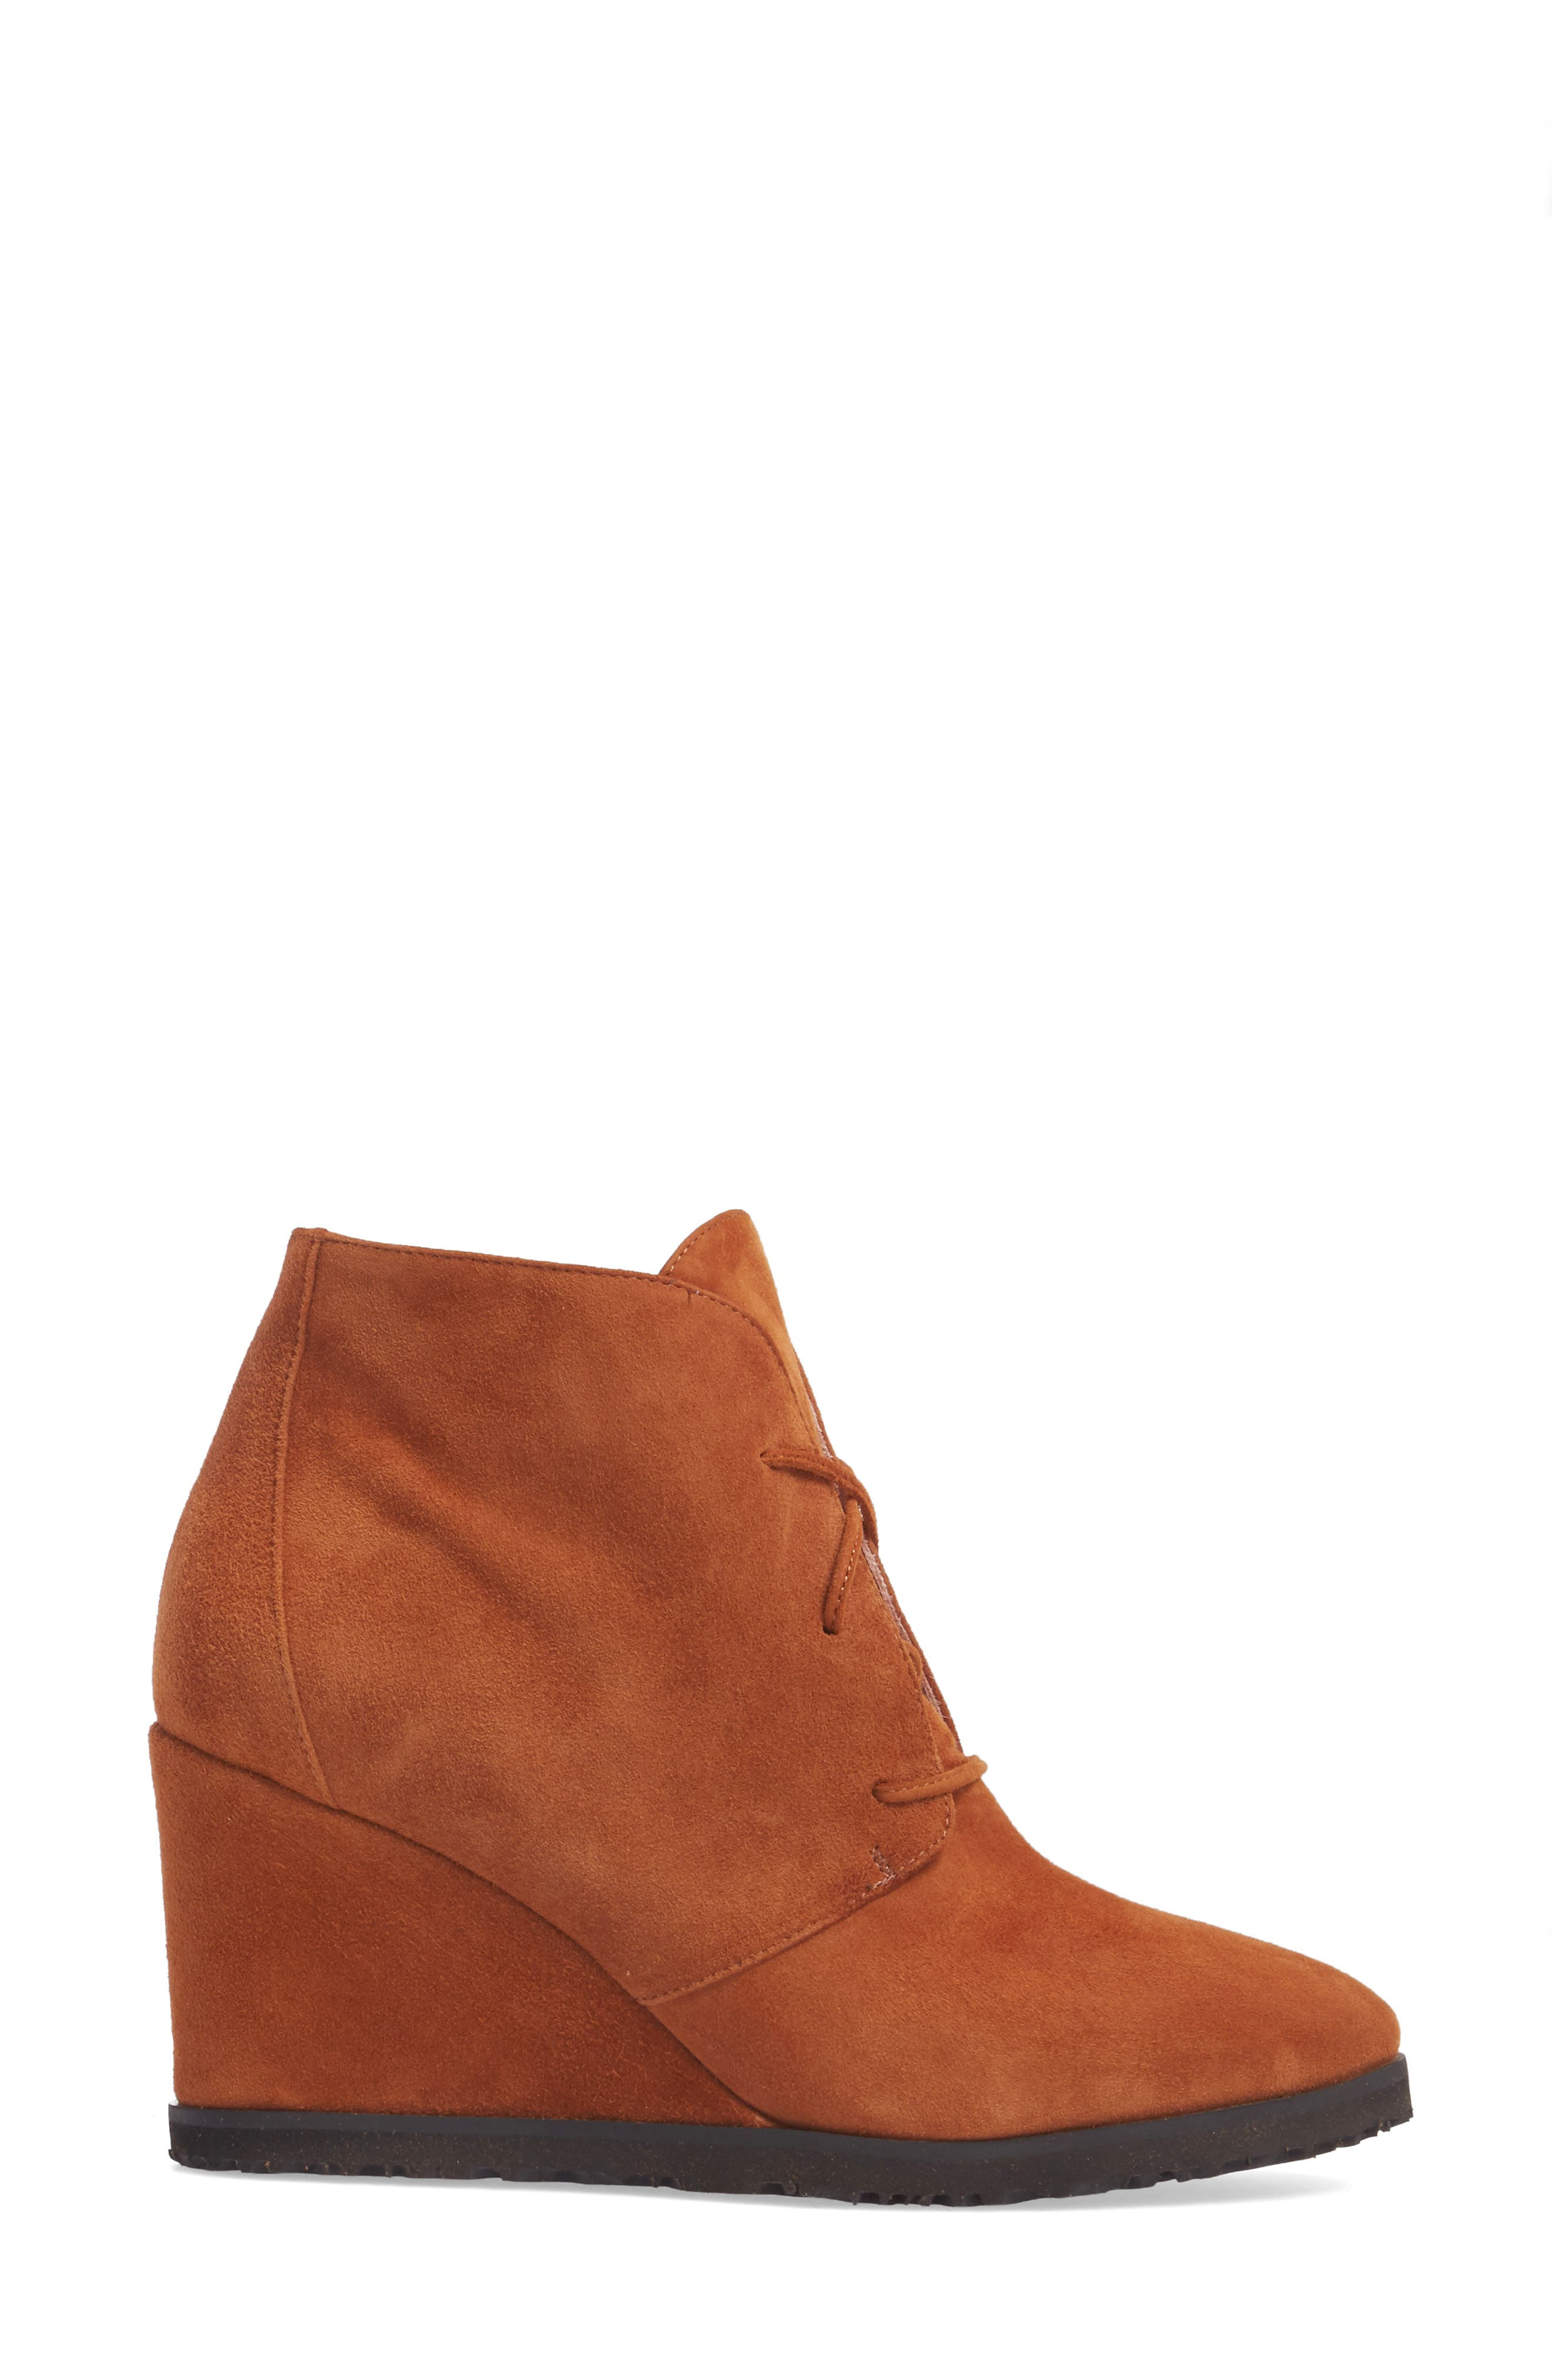 Alternate Image 3  - Taryn Rose Marta Wedge Bootie (Women)